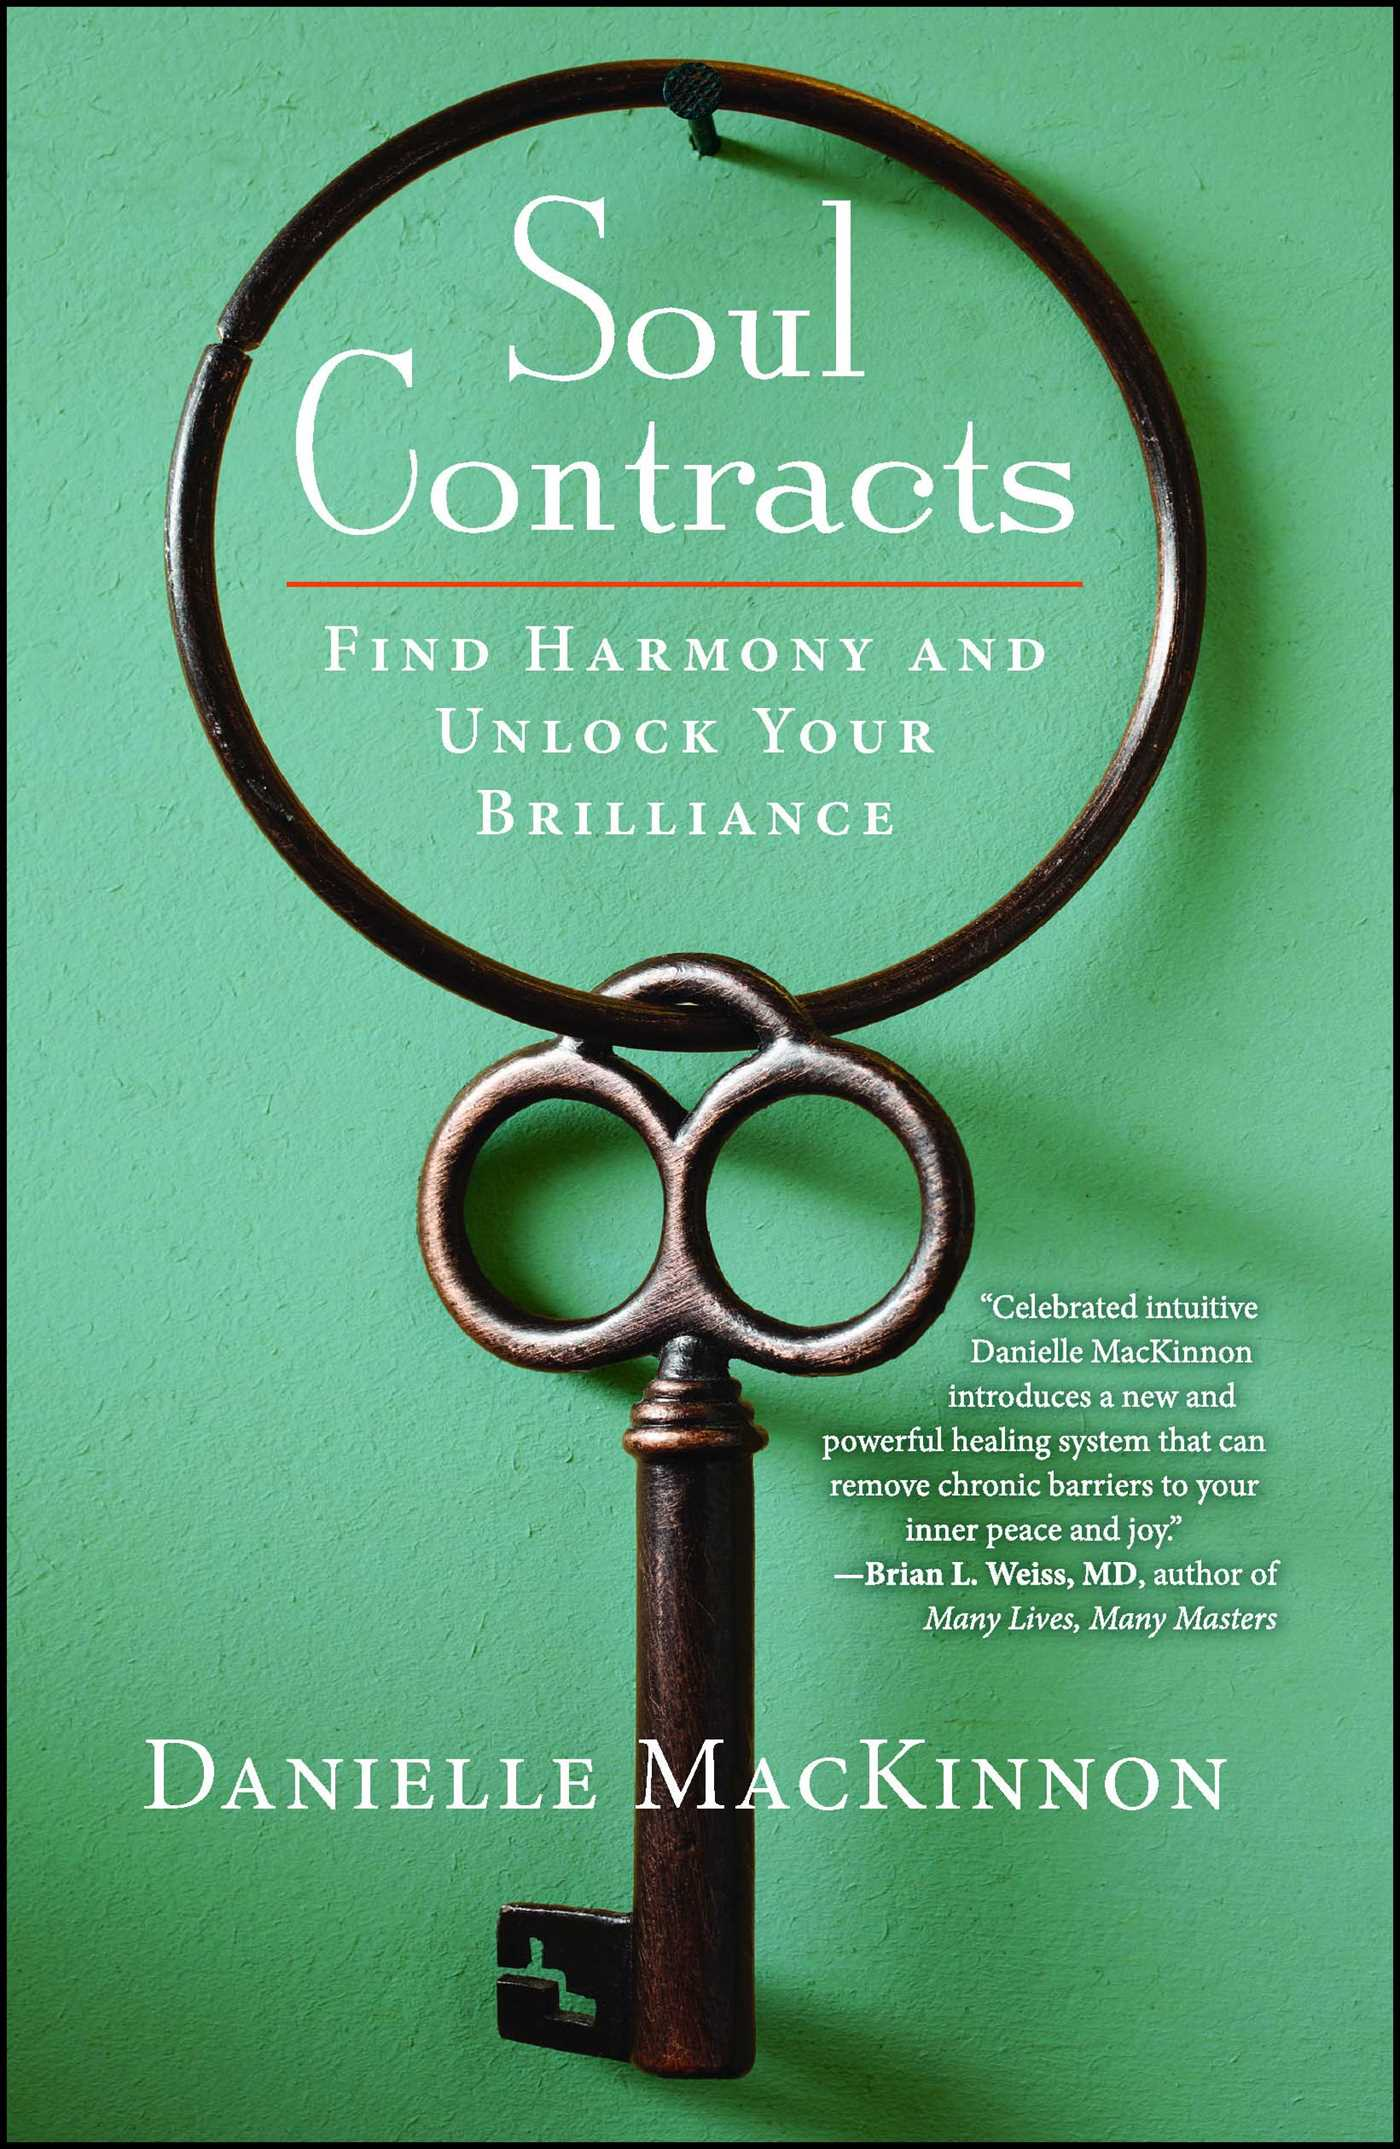 Book Cover Photography Contract : Soul contracts book by danielle mackinnon official